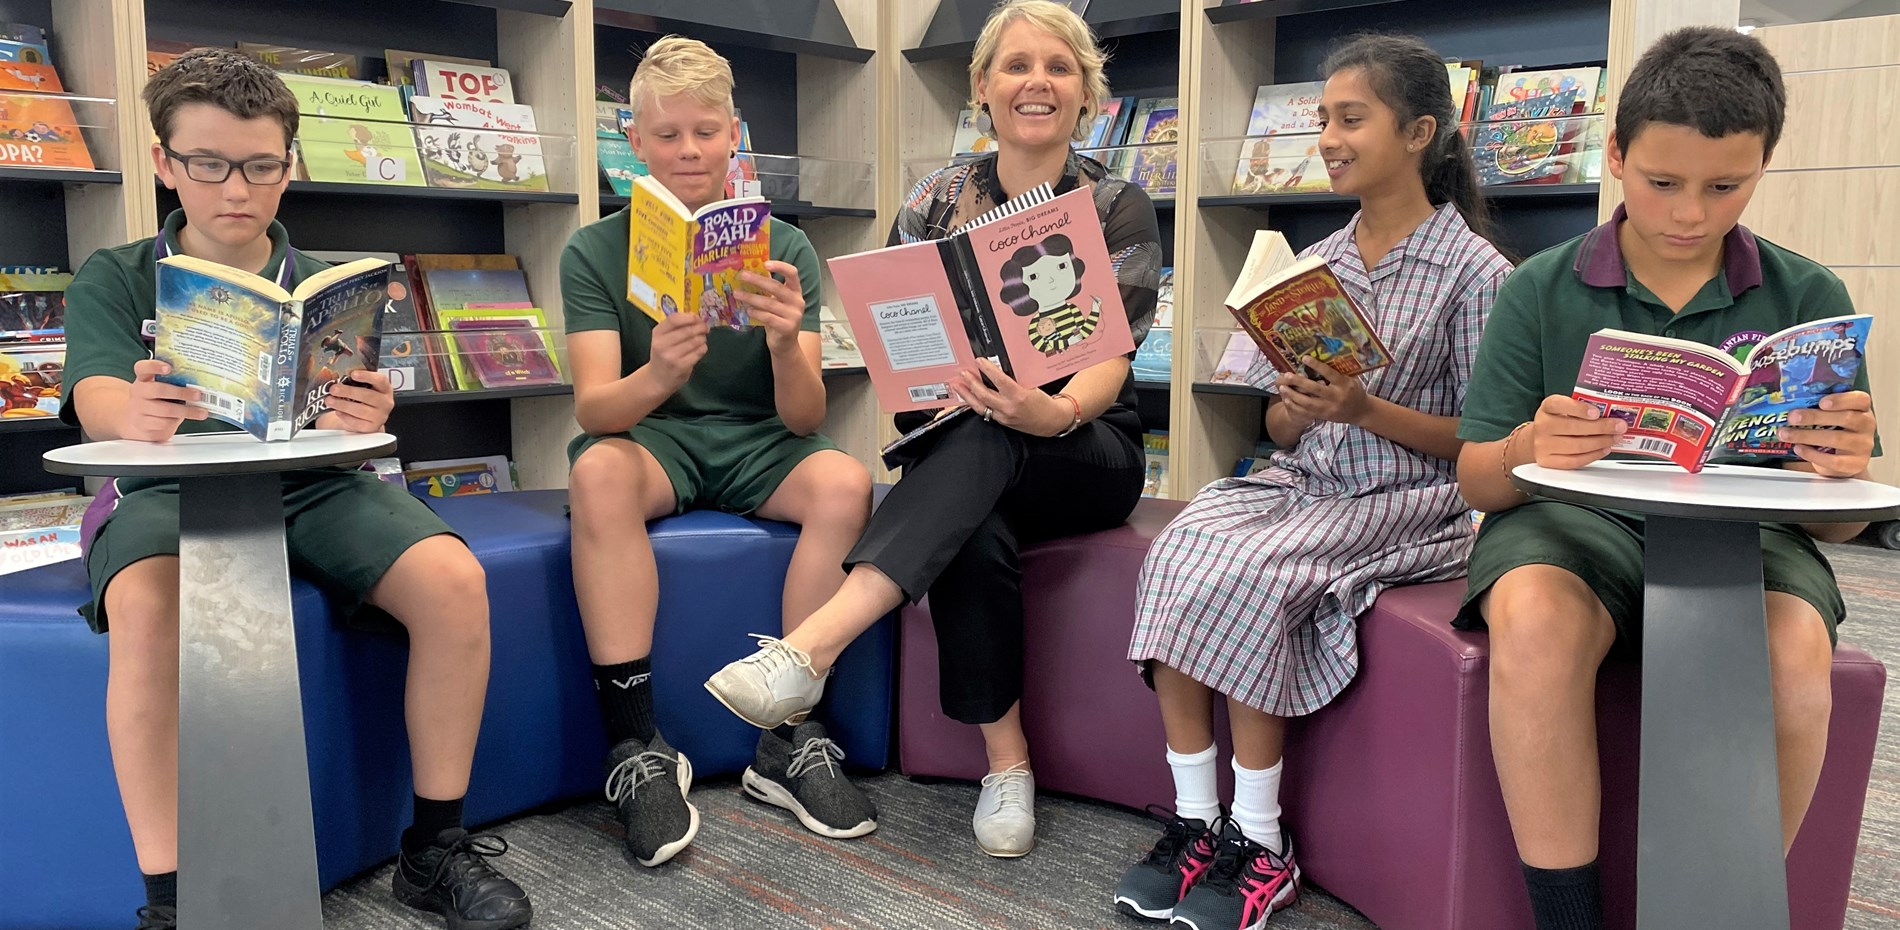 MEDIA RELEASE - OVER 700 NEW BOOKS FOR BANYAN FIELDS PRIMARY SCHOOL - 1 APRIL 2021 Main Image